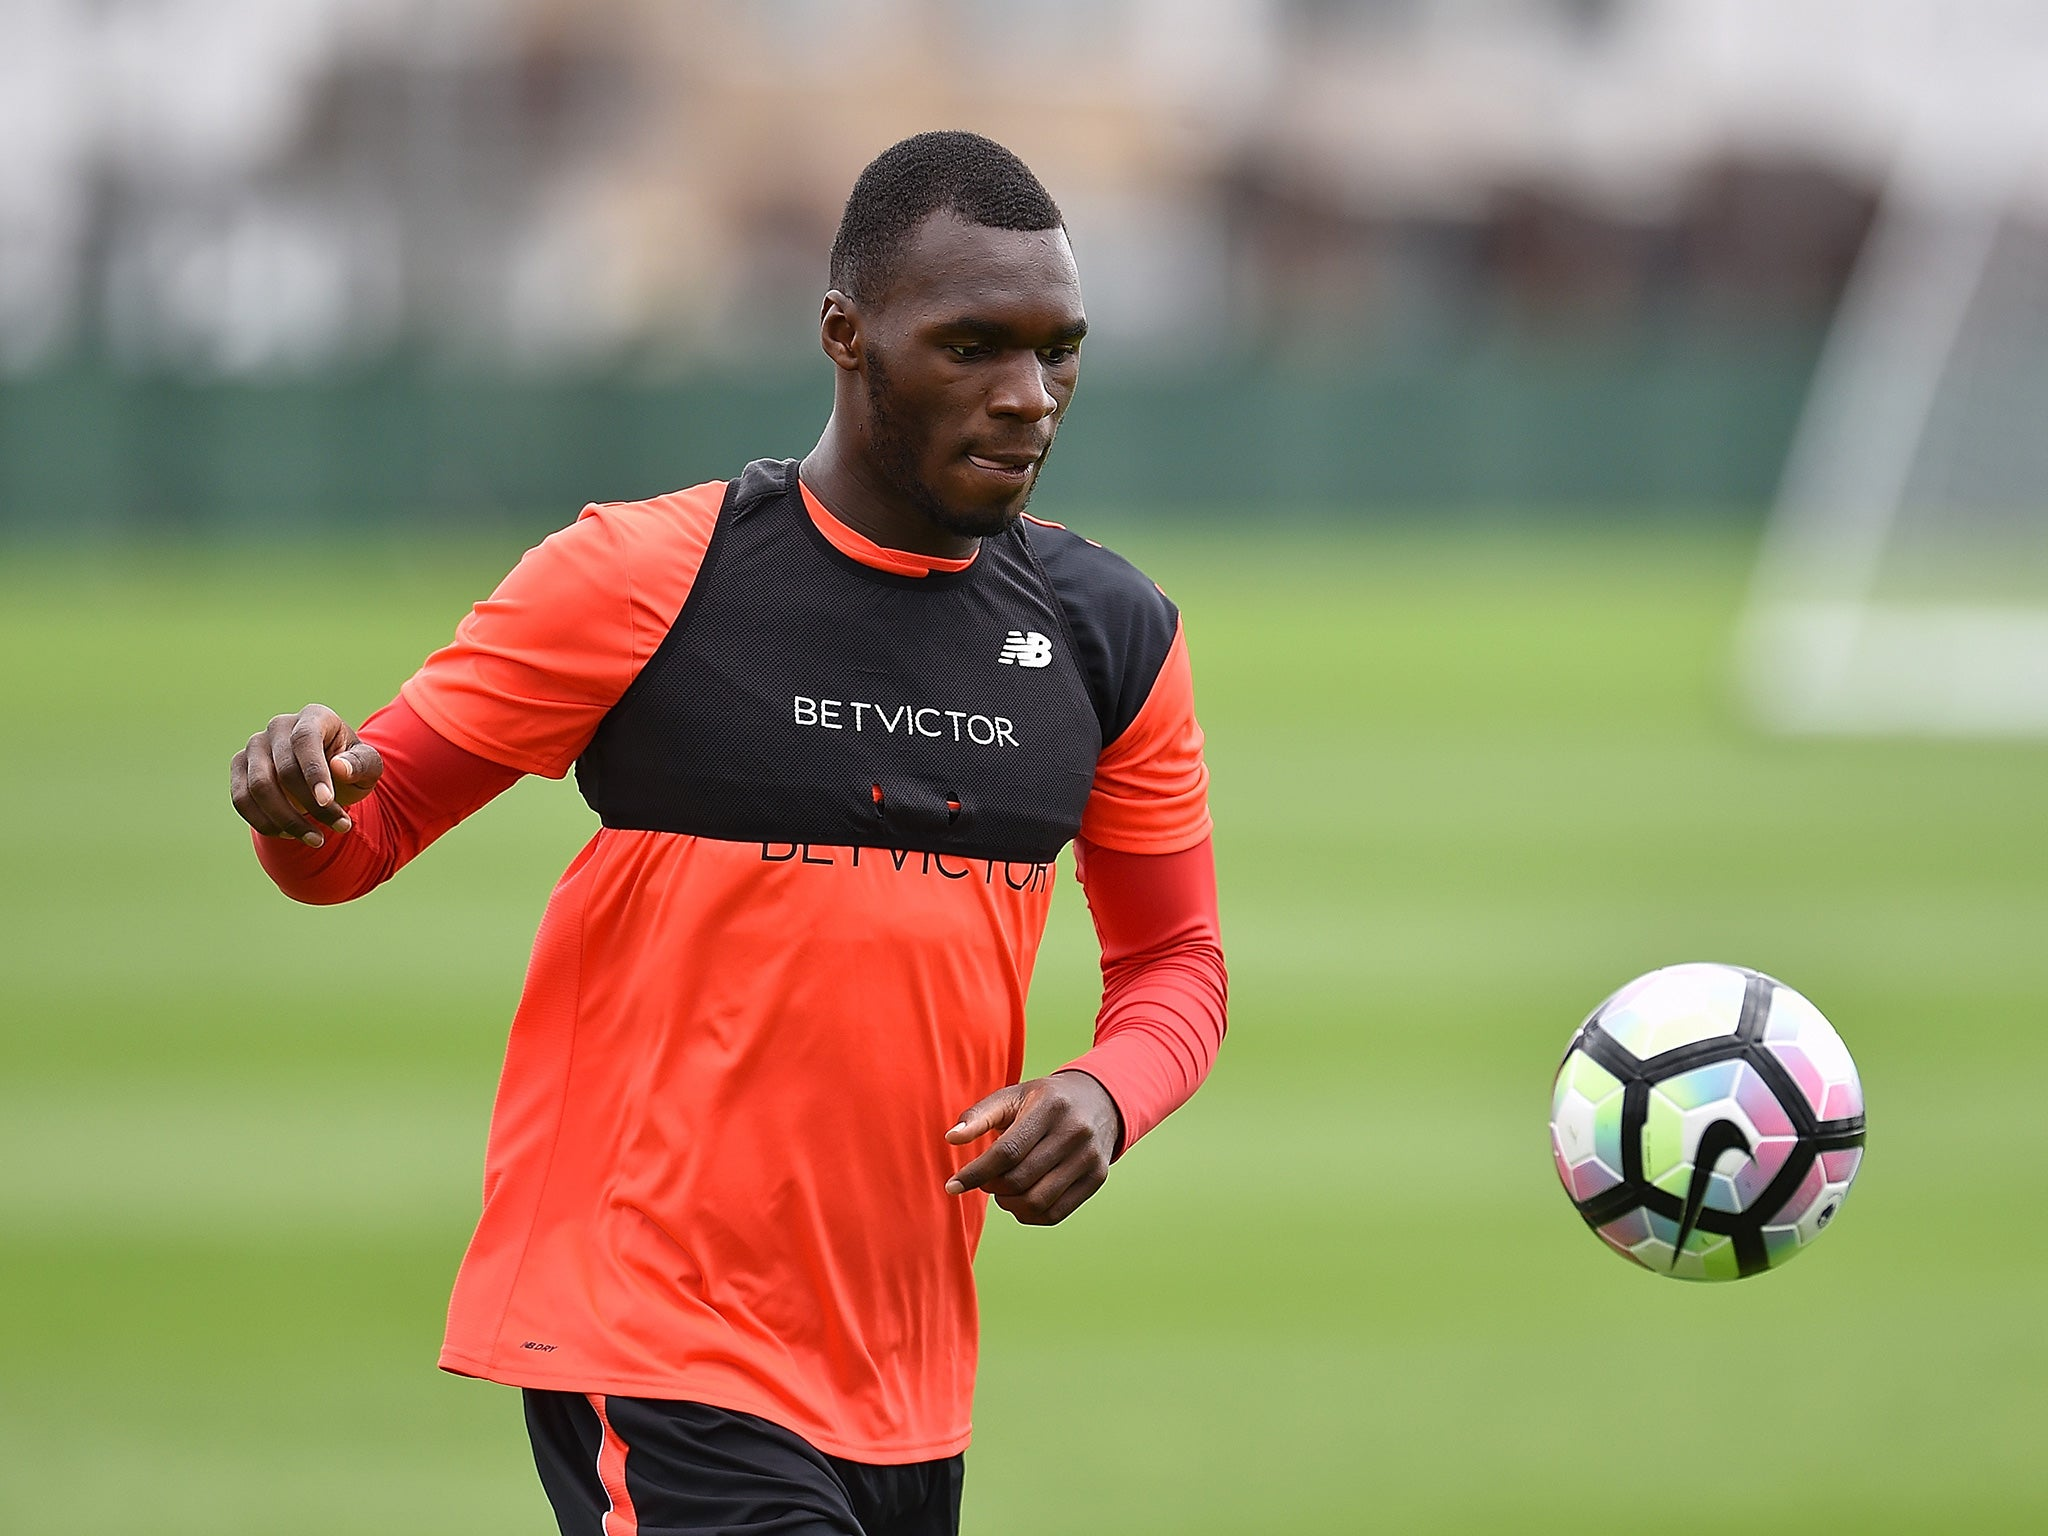 Christian Benteke Former Liverpool striker claims to play for